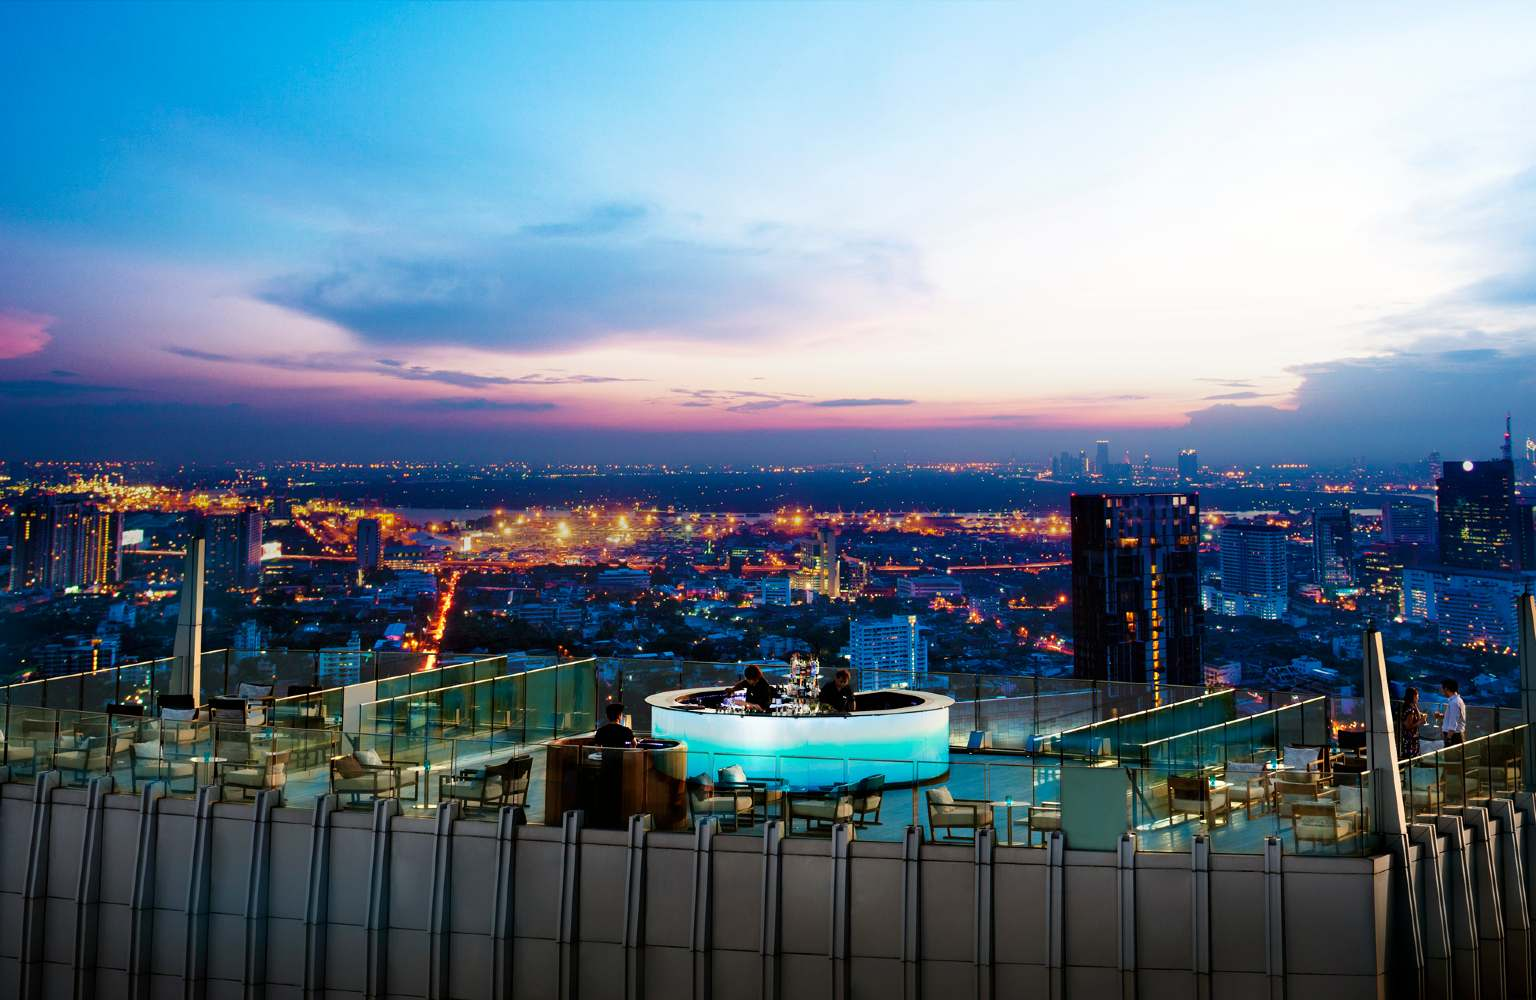 The round with neon blue lit bar on the roof of the Octave Sky Bar (Marriott Bangkok)